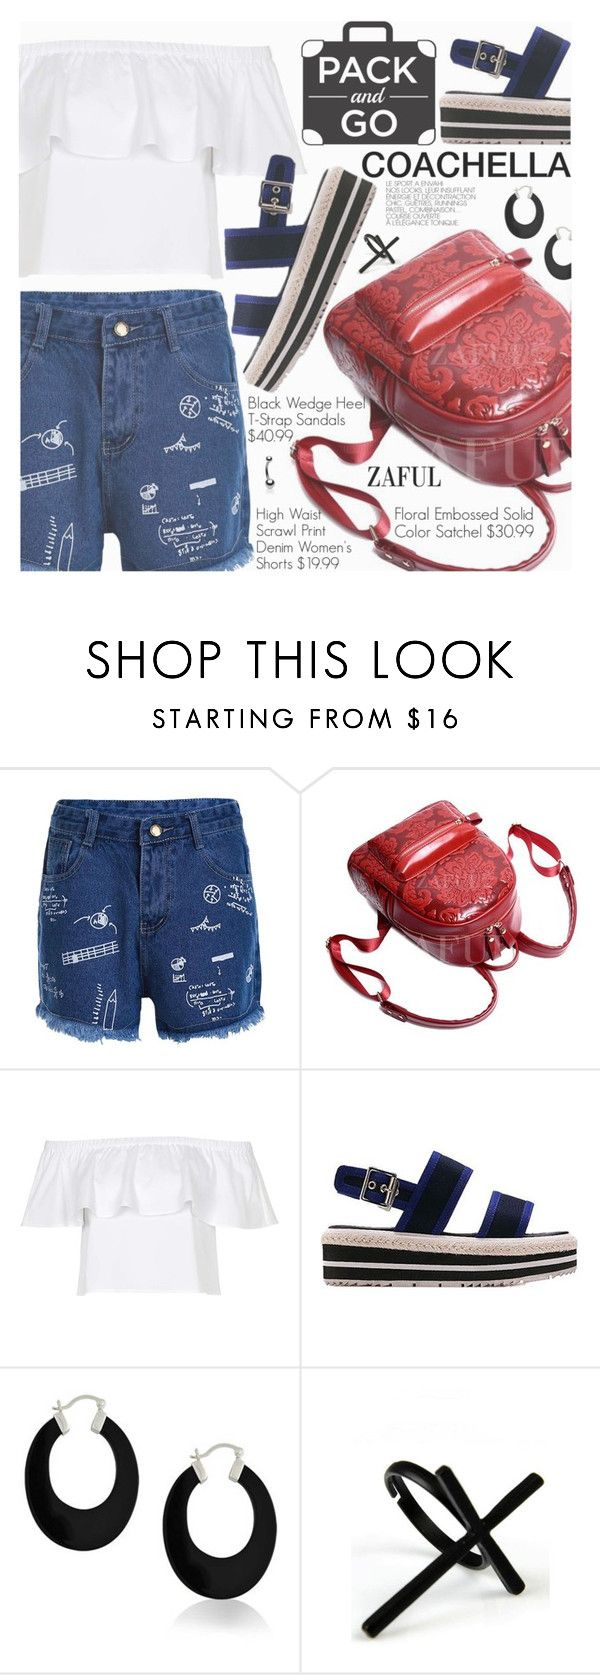 """Pack for Coachella!"" by pokadoll ❤ liked on Polyvore featuring Topshop, Bling Jewelry and Emi Jewellery"